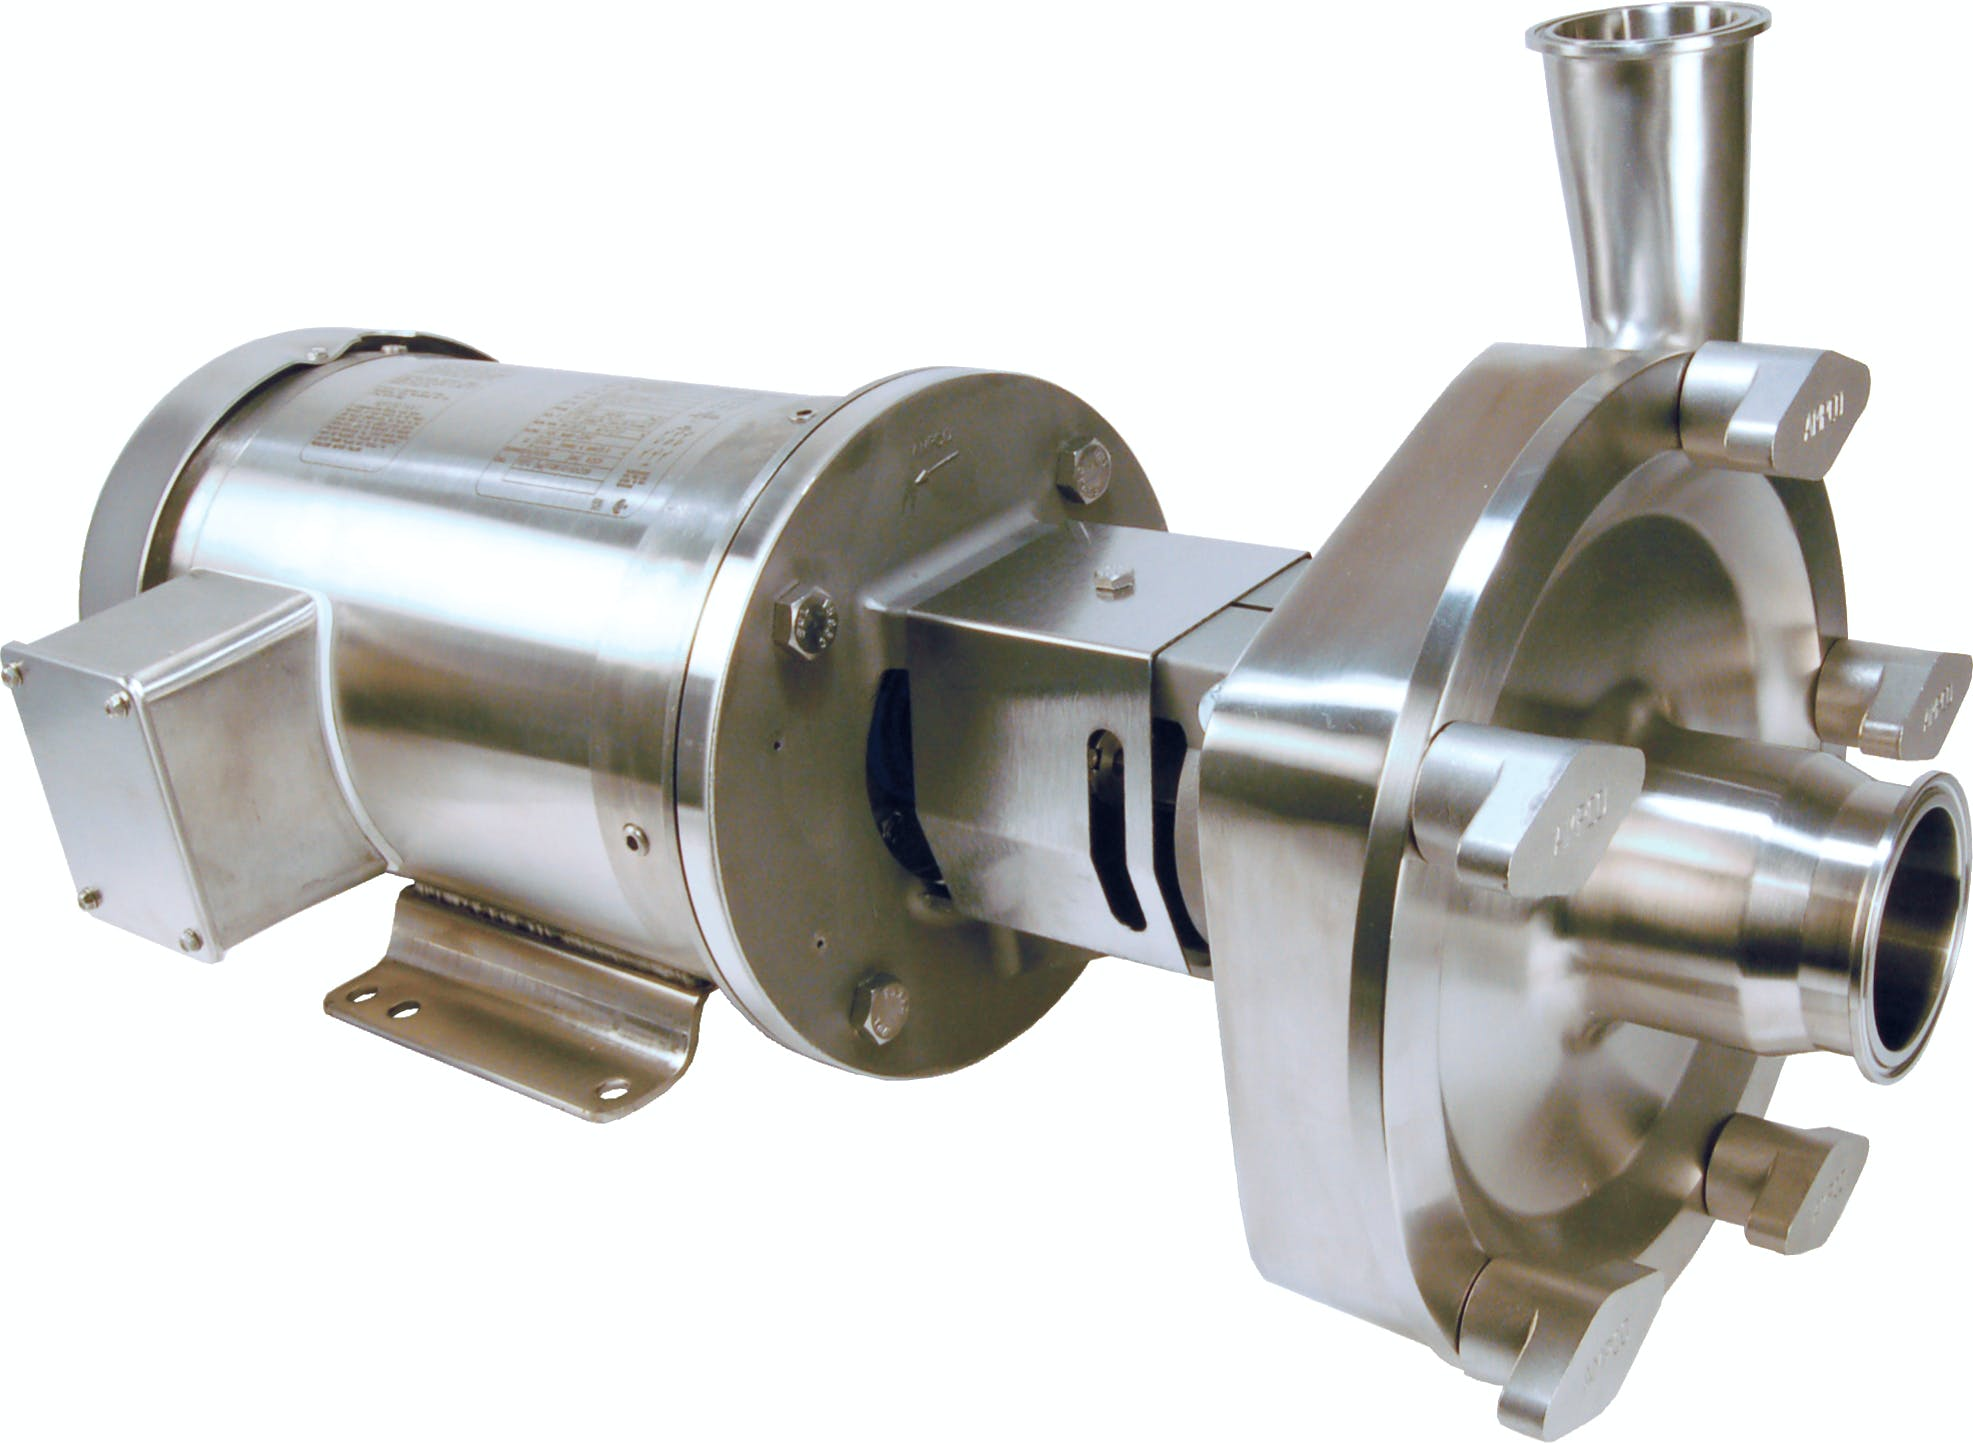 L Series centrifugal  Food industry pump sold by Ampco Pumps Co.